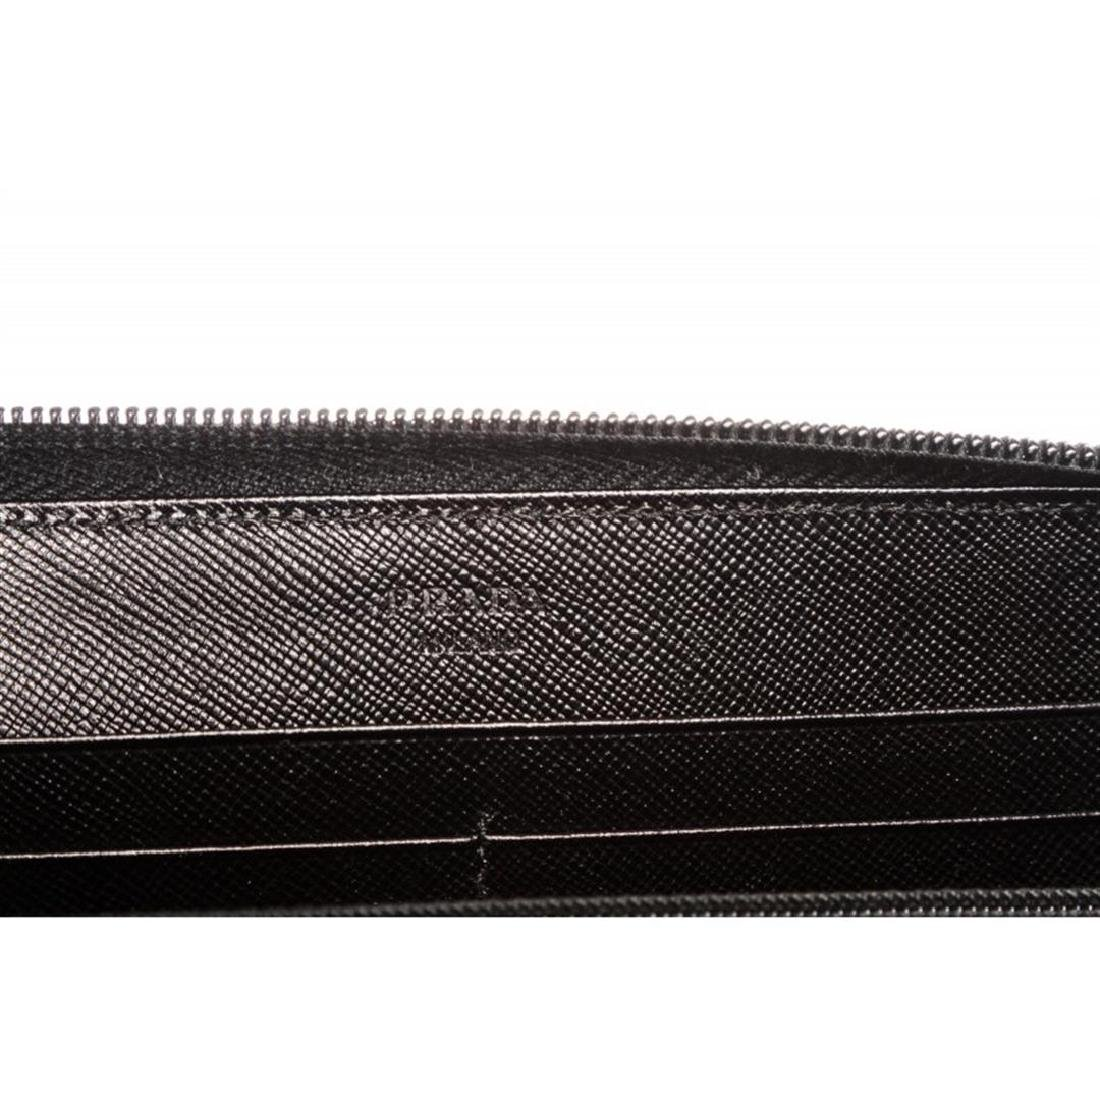 Prada Black Nylon Leather Zipper Wallet - 7